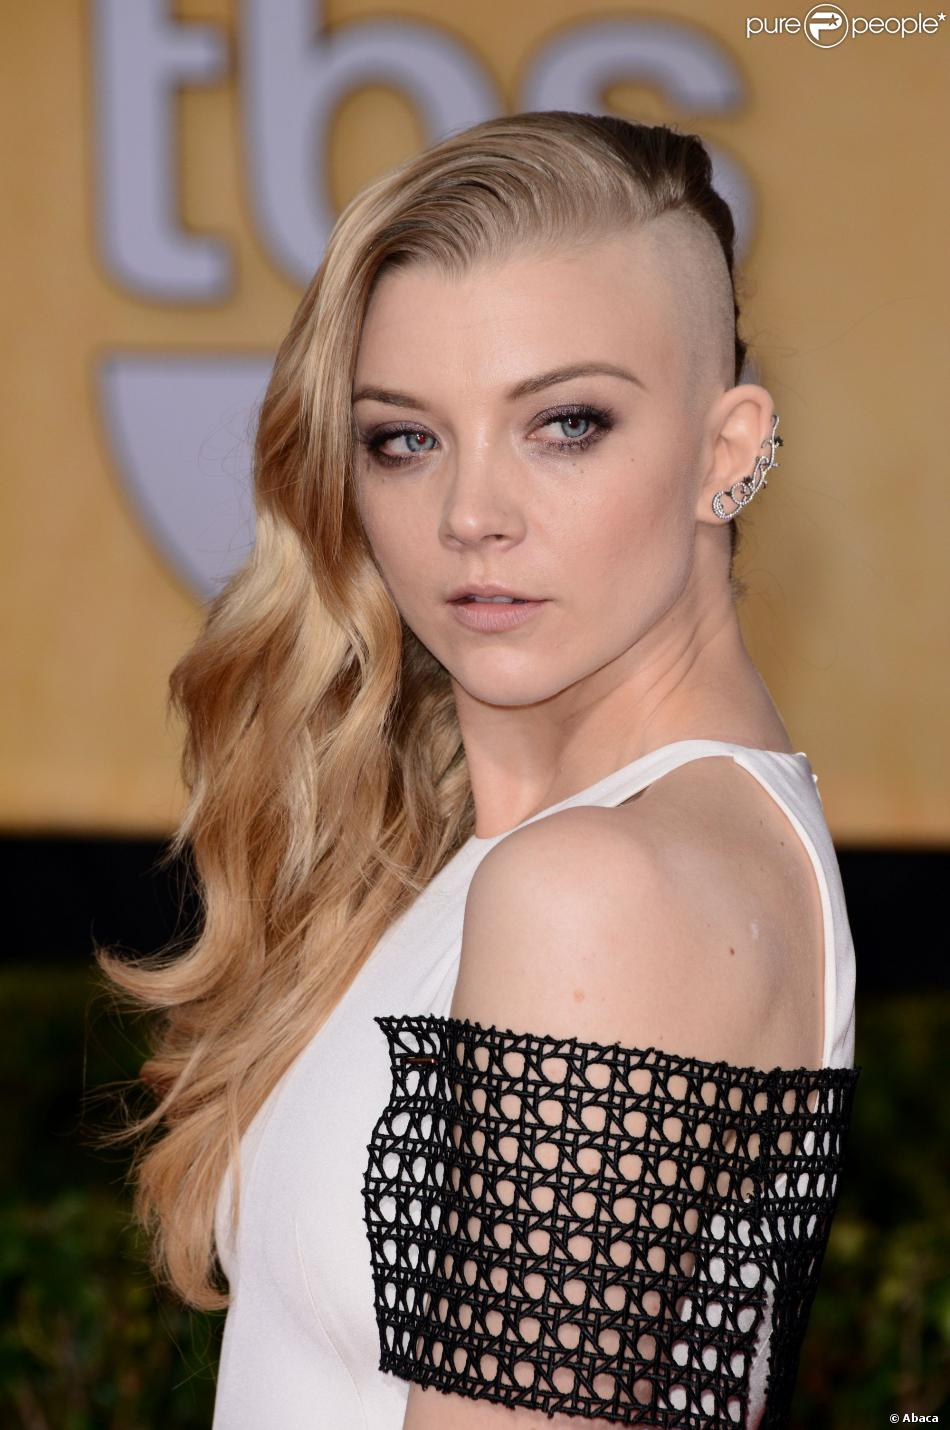 Natalie Dormer Fashion Magazine February 2016 Photoshoot: YOUR AN ACTOR OR ACTRESS, WHO WOULD YOU DO A LOVE SCENE